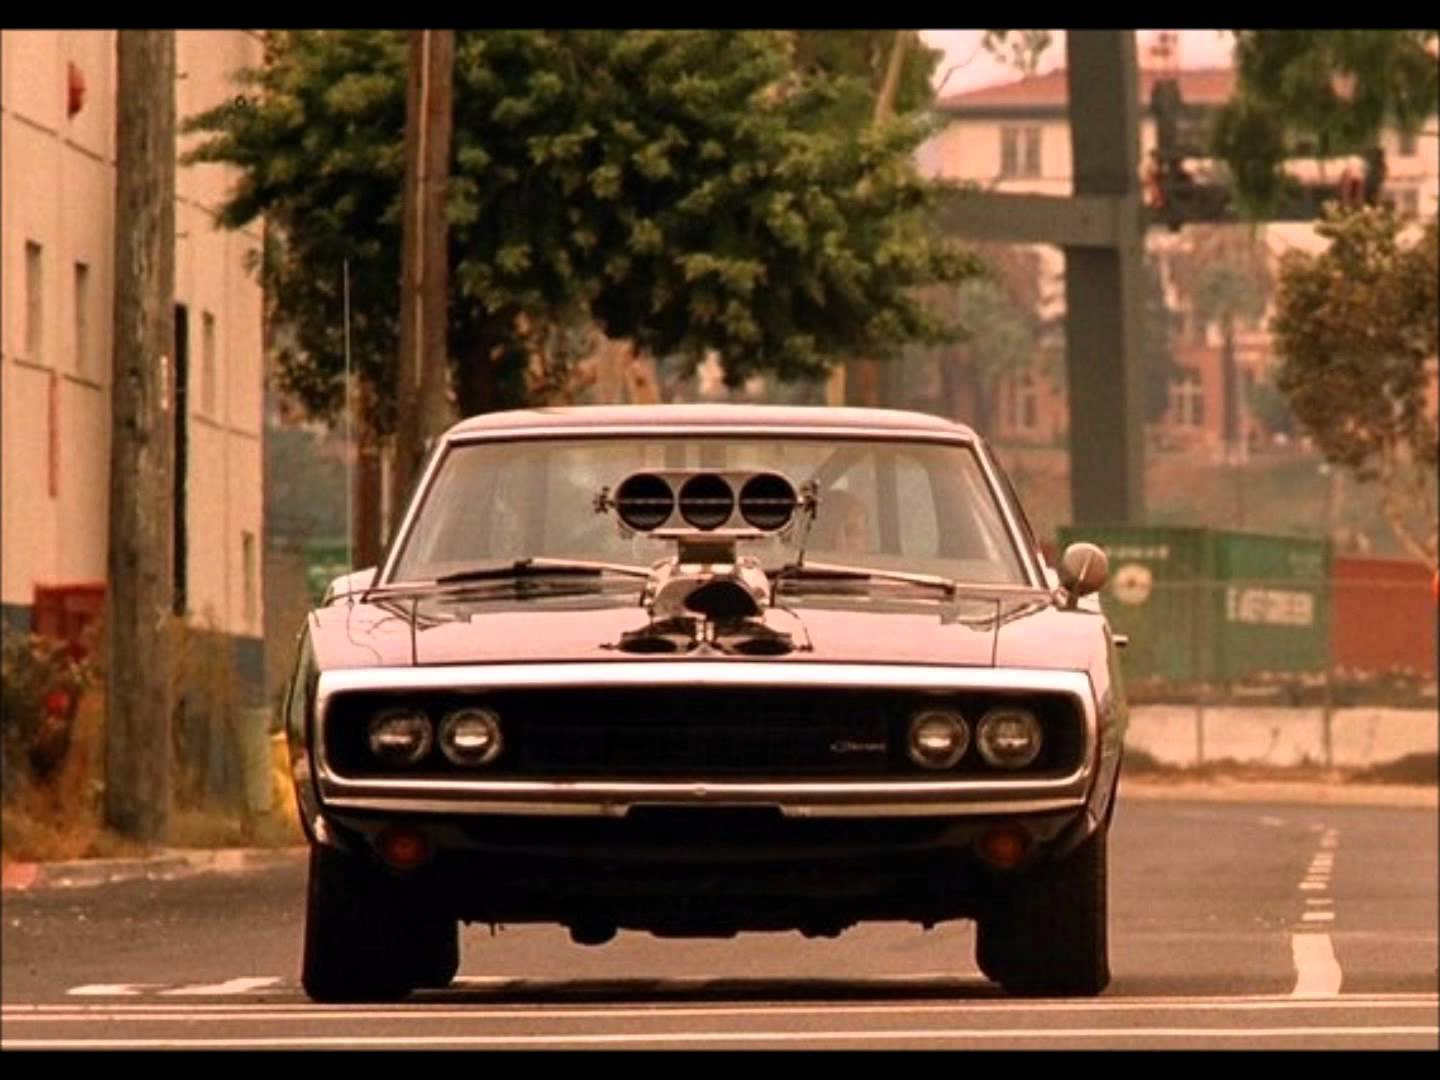 Kết quả hình ảnh cho 1970 Dodge Charger R/T  - The Fast and the Furious Franchise (2001)